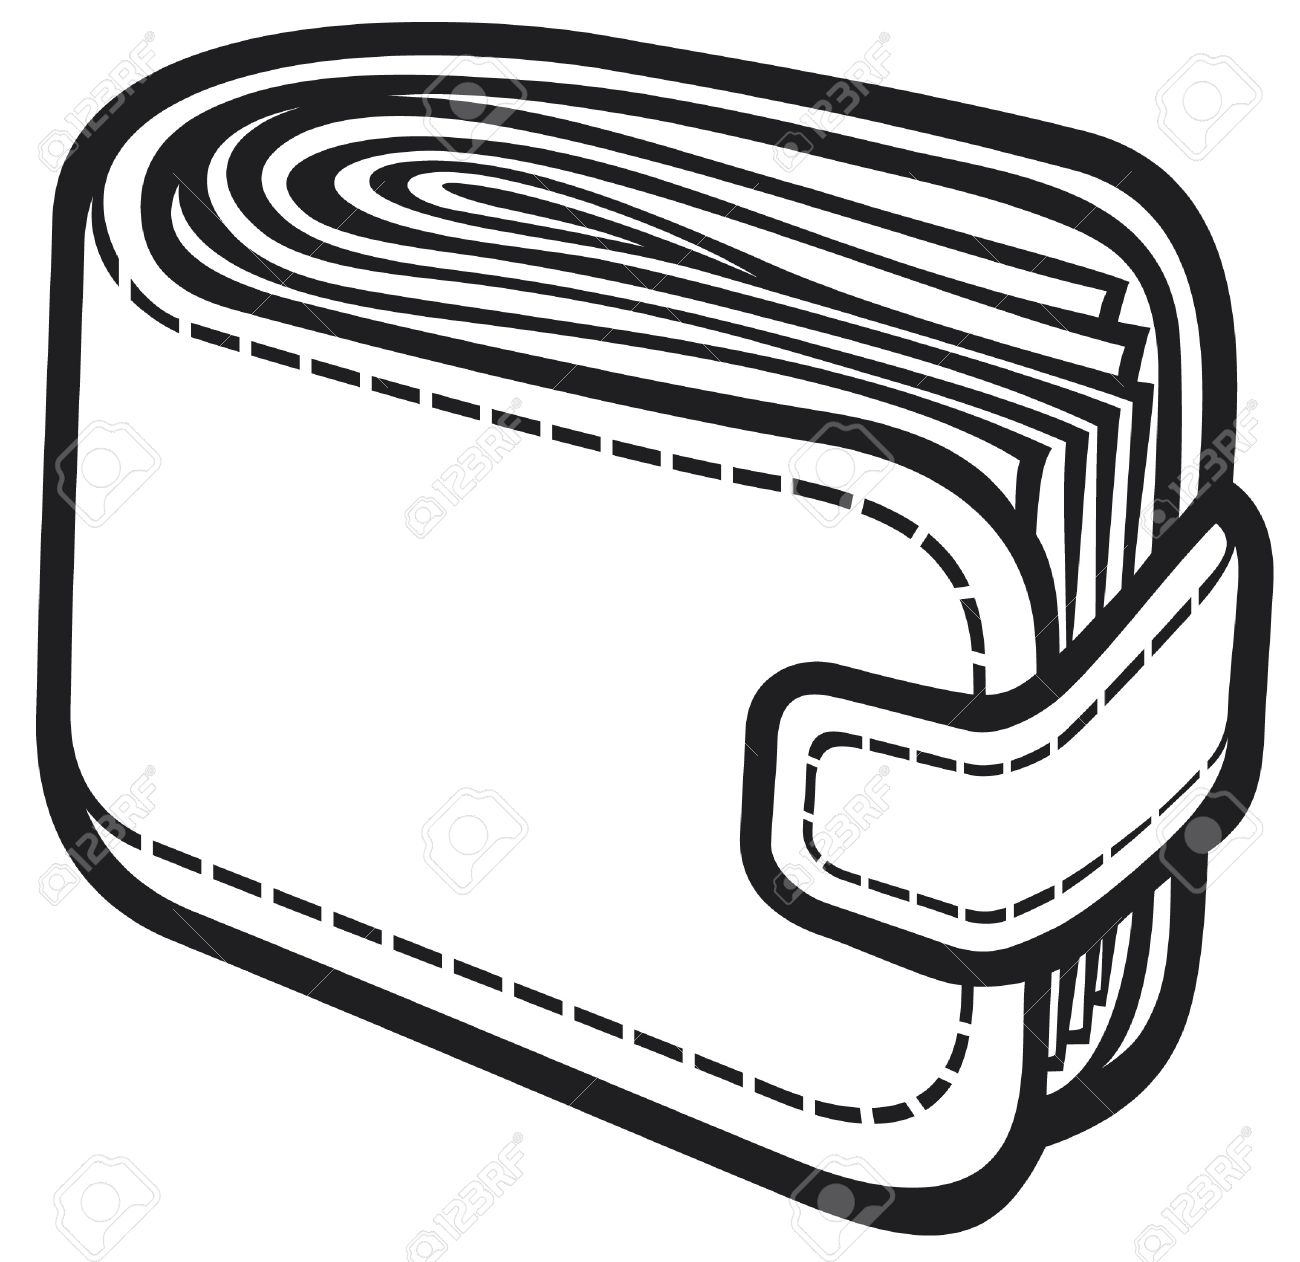 wallet clipart black and white 11 clipart station rh clipartstation com wallet images clipart wallet images clipart